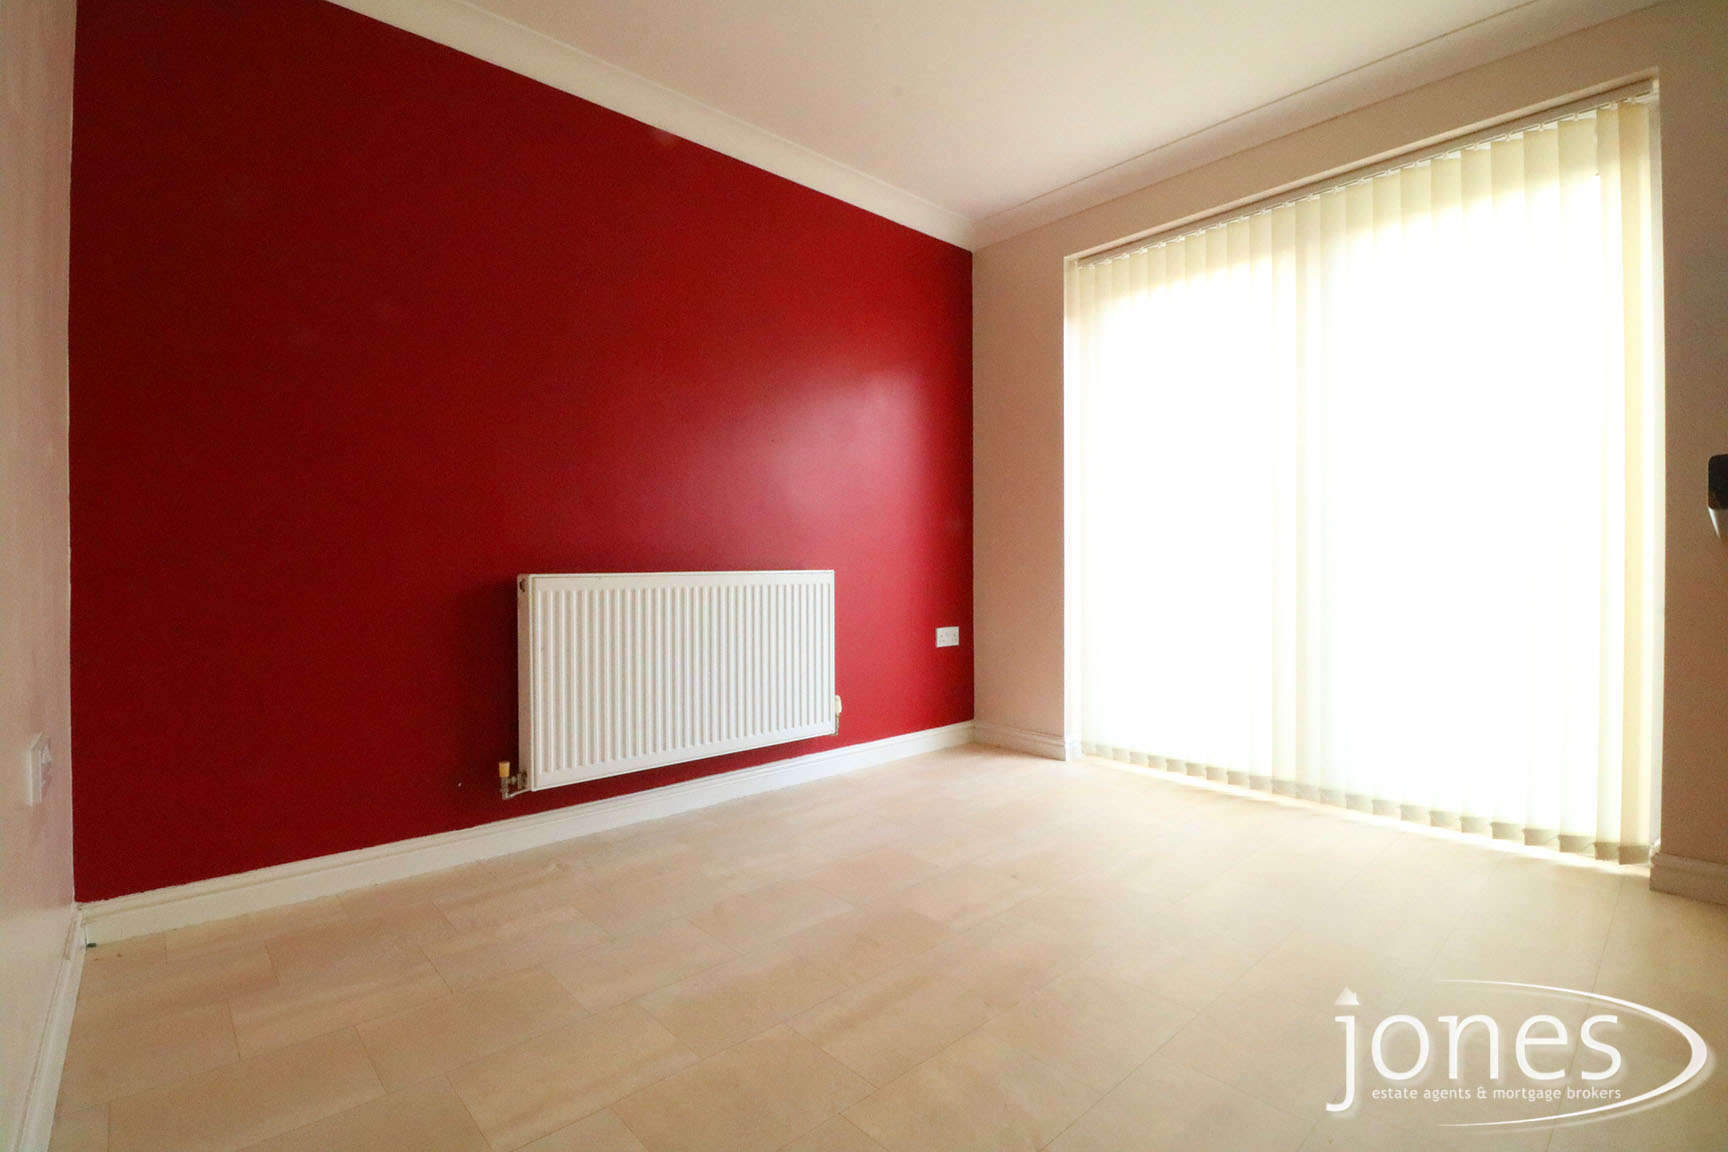 Home for Sale Let - Photo 04 Timothy Court, Stockton on Tees, TS18 3AU